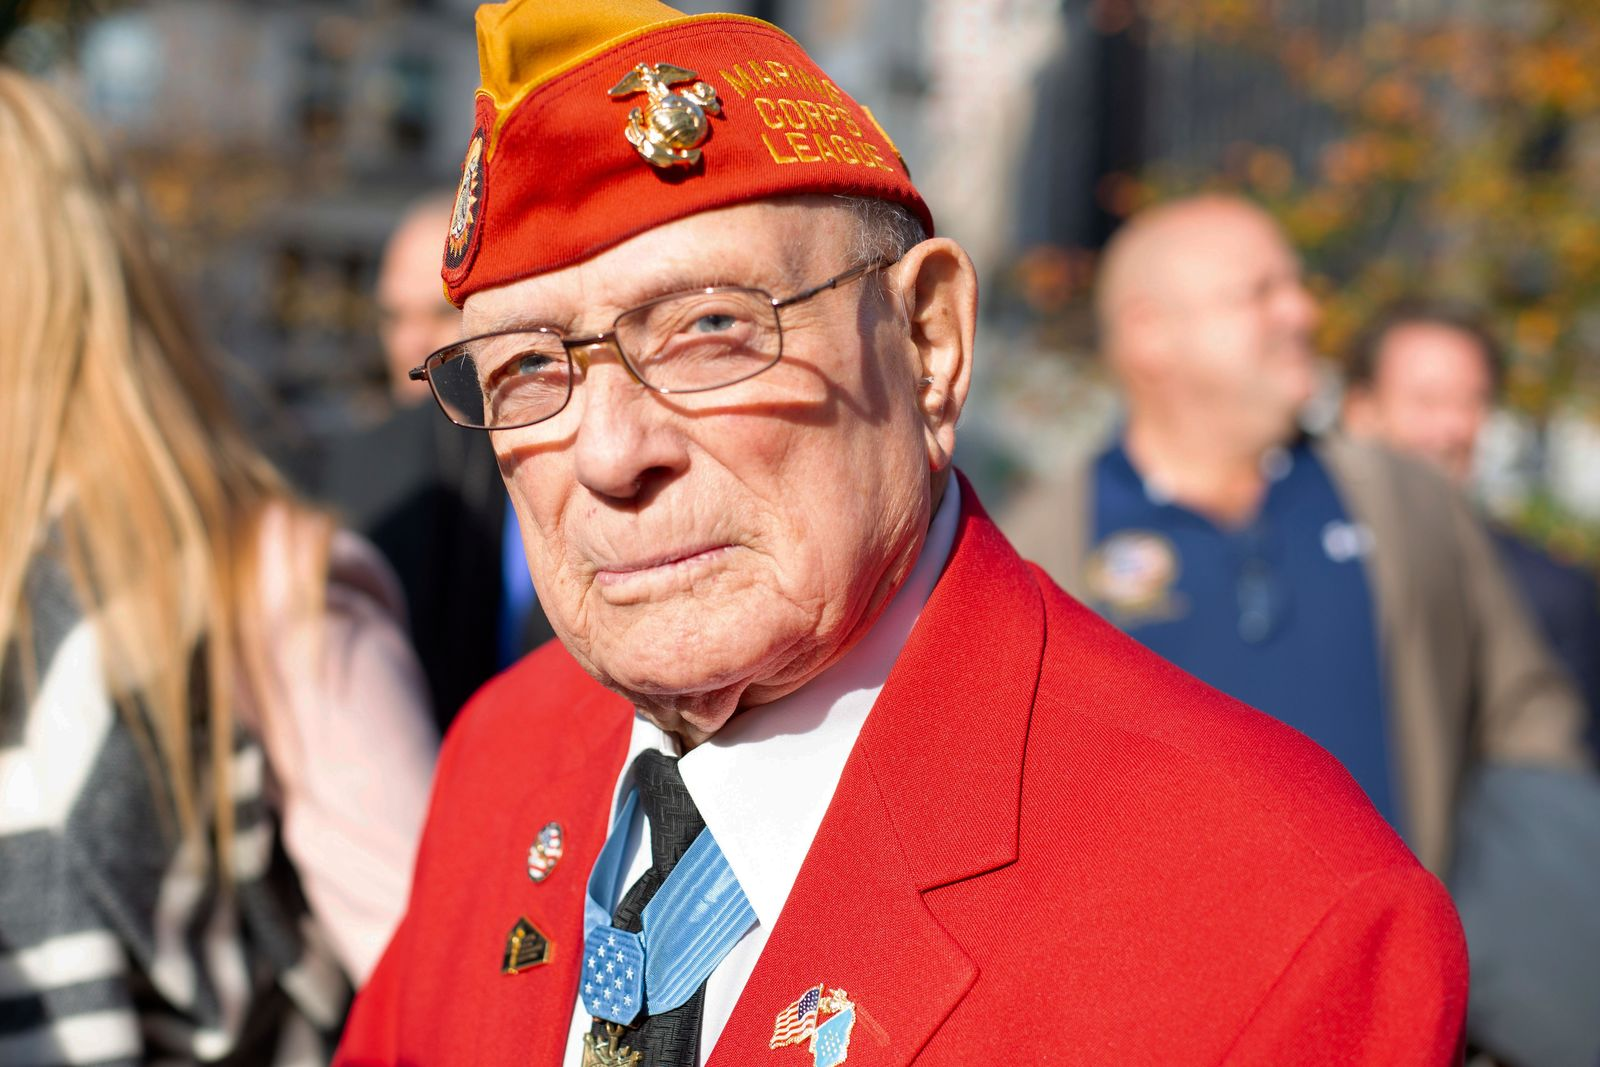 "Marine Corps Chief Warrant Officer Four Hershel ""Woody"" Williams is pictured at the 2019 New York City Veterans Day Parade, Nov. 11. Williams served as a grand marshal of the parade, which marked its centennial anniversary and honored the Marine Corps as its featured service. Formed Nov. 10, 1775, as naval augment forces capable of fighting both at sea and on shore, the Marine Corps has secured freedom in every major conflict America has faced. Together, the Navy-Marine Corps Team enables the joint force to partner together and operate on behalf of national defense in this era of great power competition. Steeped in the core values of honor, courage and commitment, Marines bring moral, physical, and intellectual strength to every situation. When their time in uniform is done, Marines use those qualities to continue to serve their communities. (U.S. Marine Corps photo by Cpl. Mario Ramirez)"